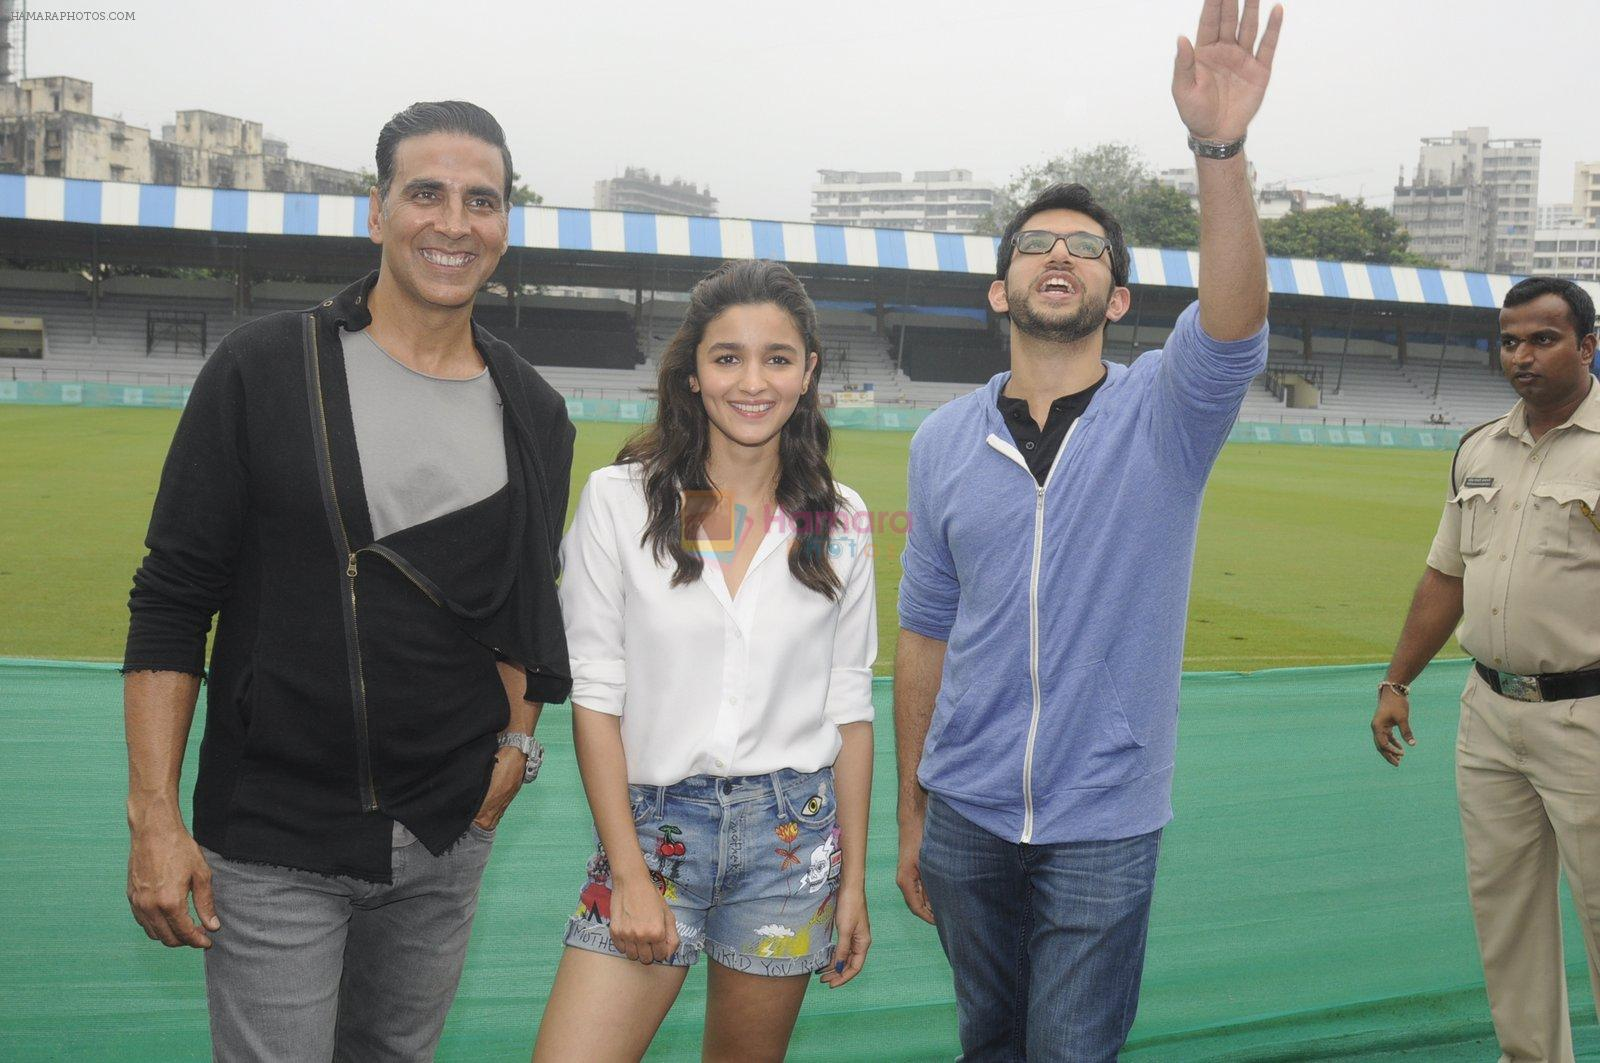 Alia Bhatt, Aditya Thackeray, Akshay Kumar for prize distribution for female martial arts for self defense course on 2nd Oct 2016